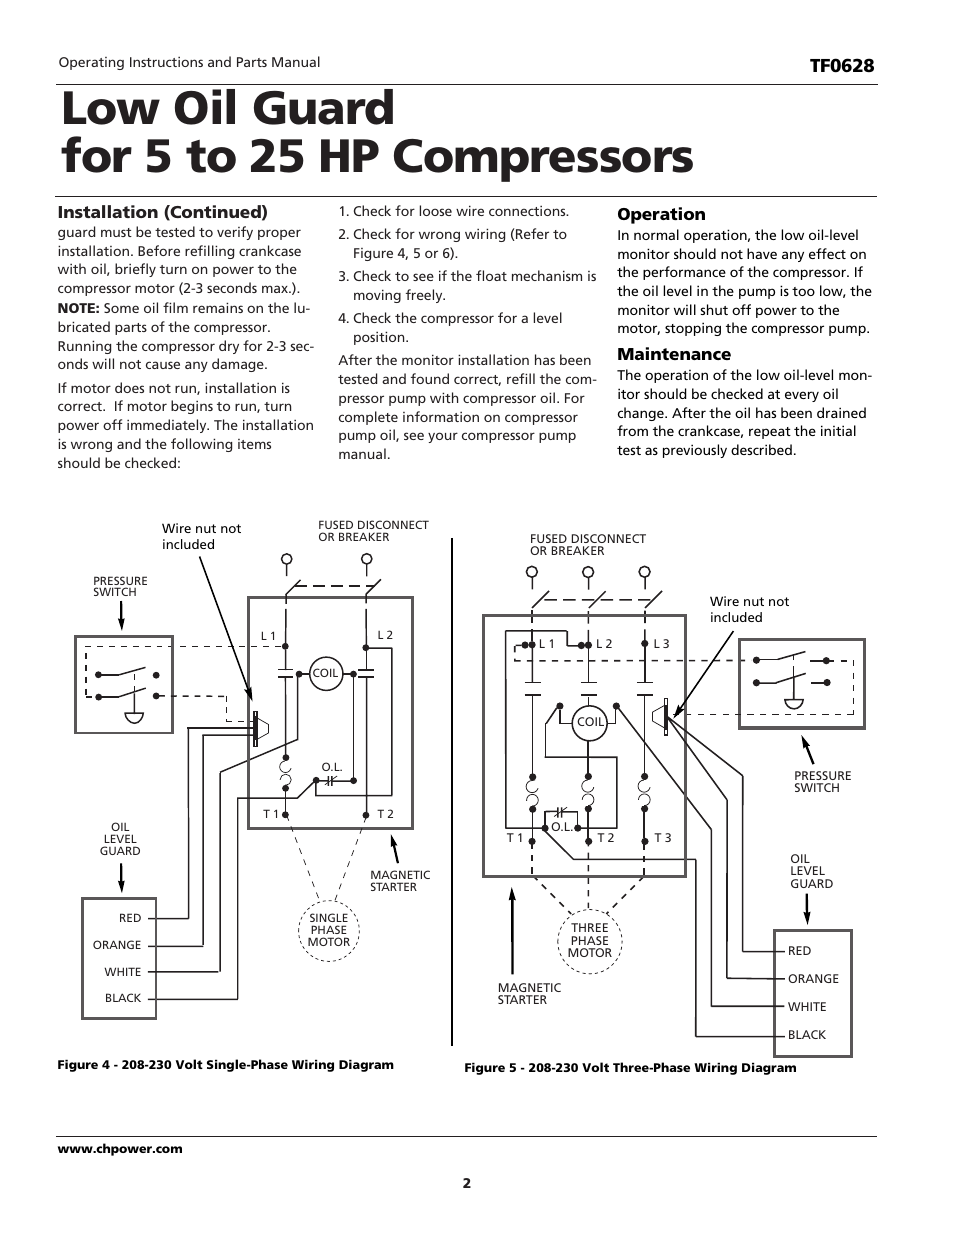 Low Oil Guard For 5 To 25 Hp Compressors Tf0628 Installation 4 Float Wiring Diagram Continued Campbell Hausfeld User Manual Page 2 12